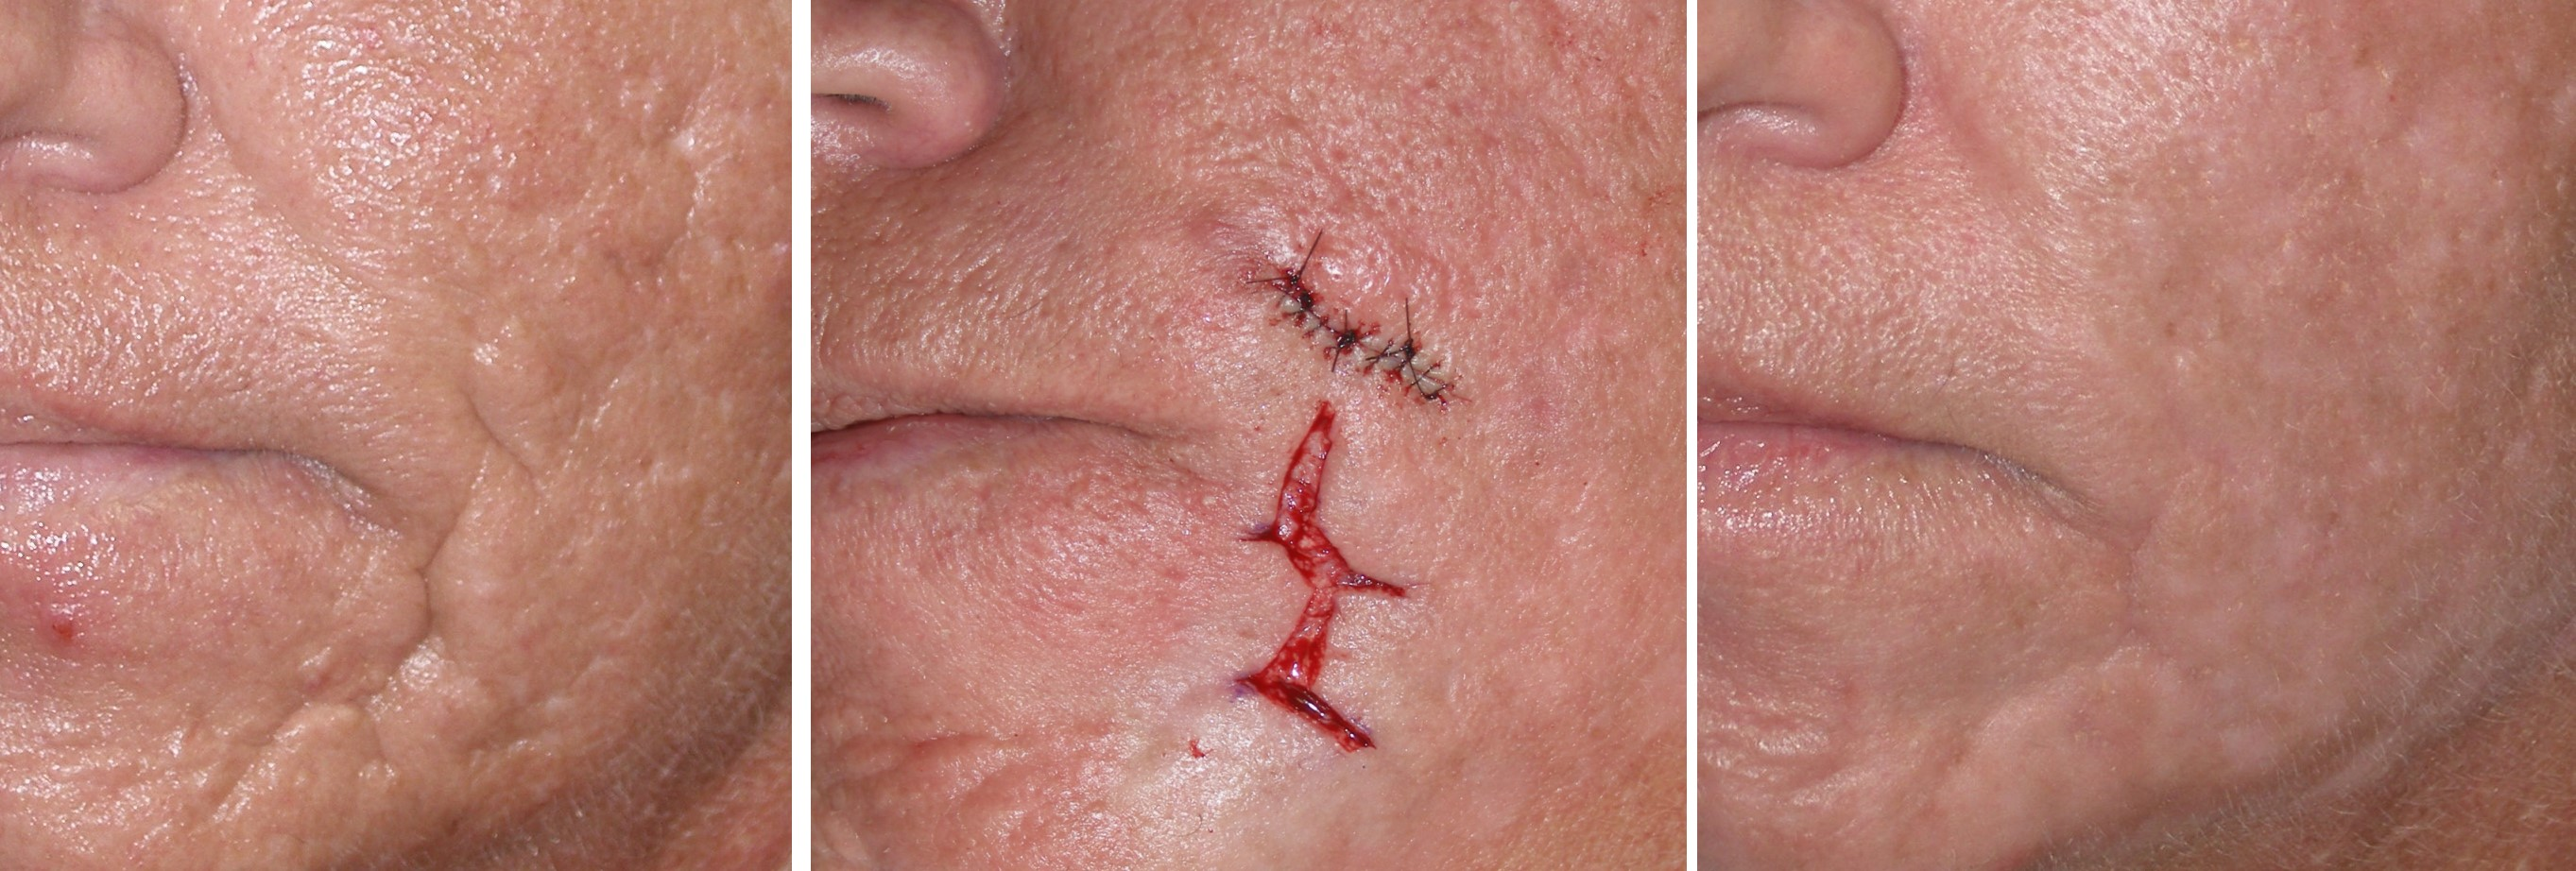 Acne Scar Removal Medical Pictures Info Health Definitions Photos